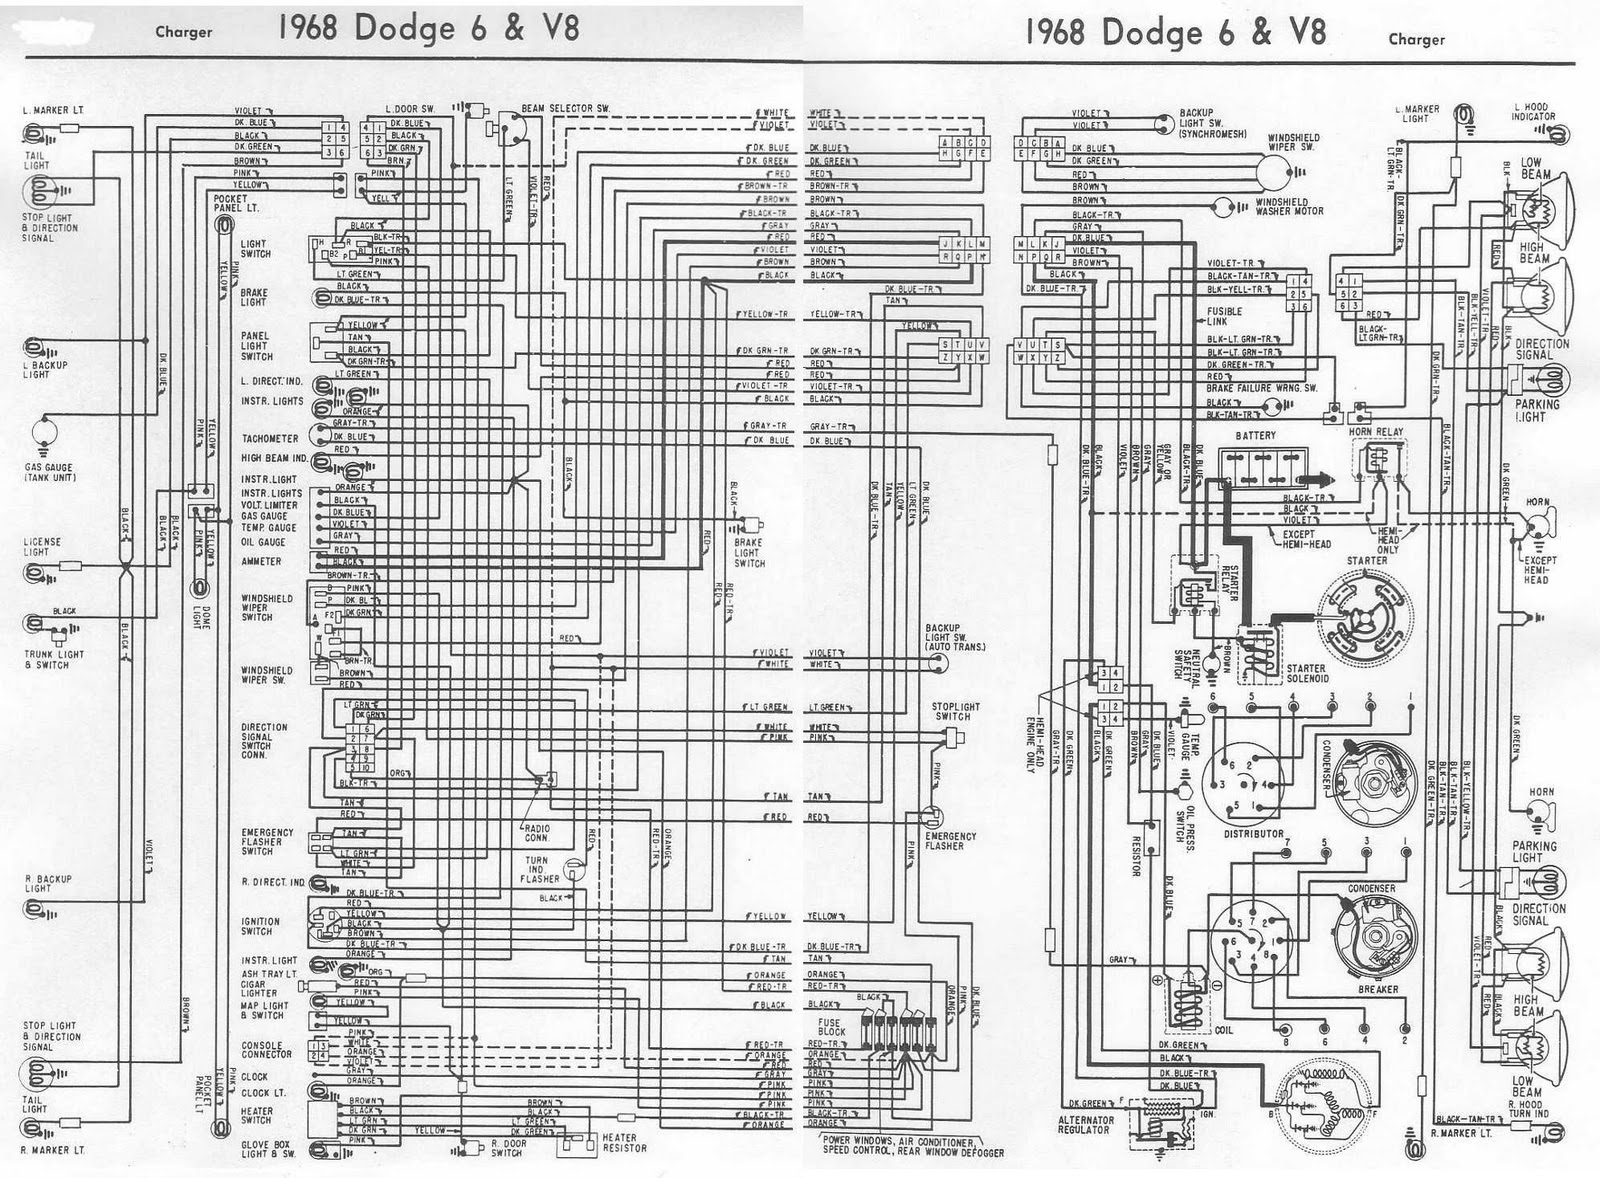 1966 dodge charger headlight wiring diagram